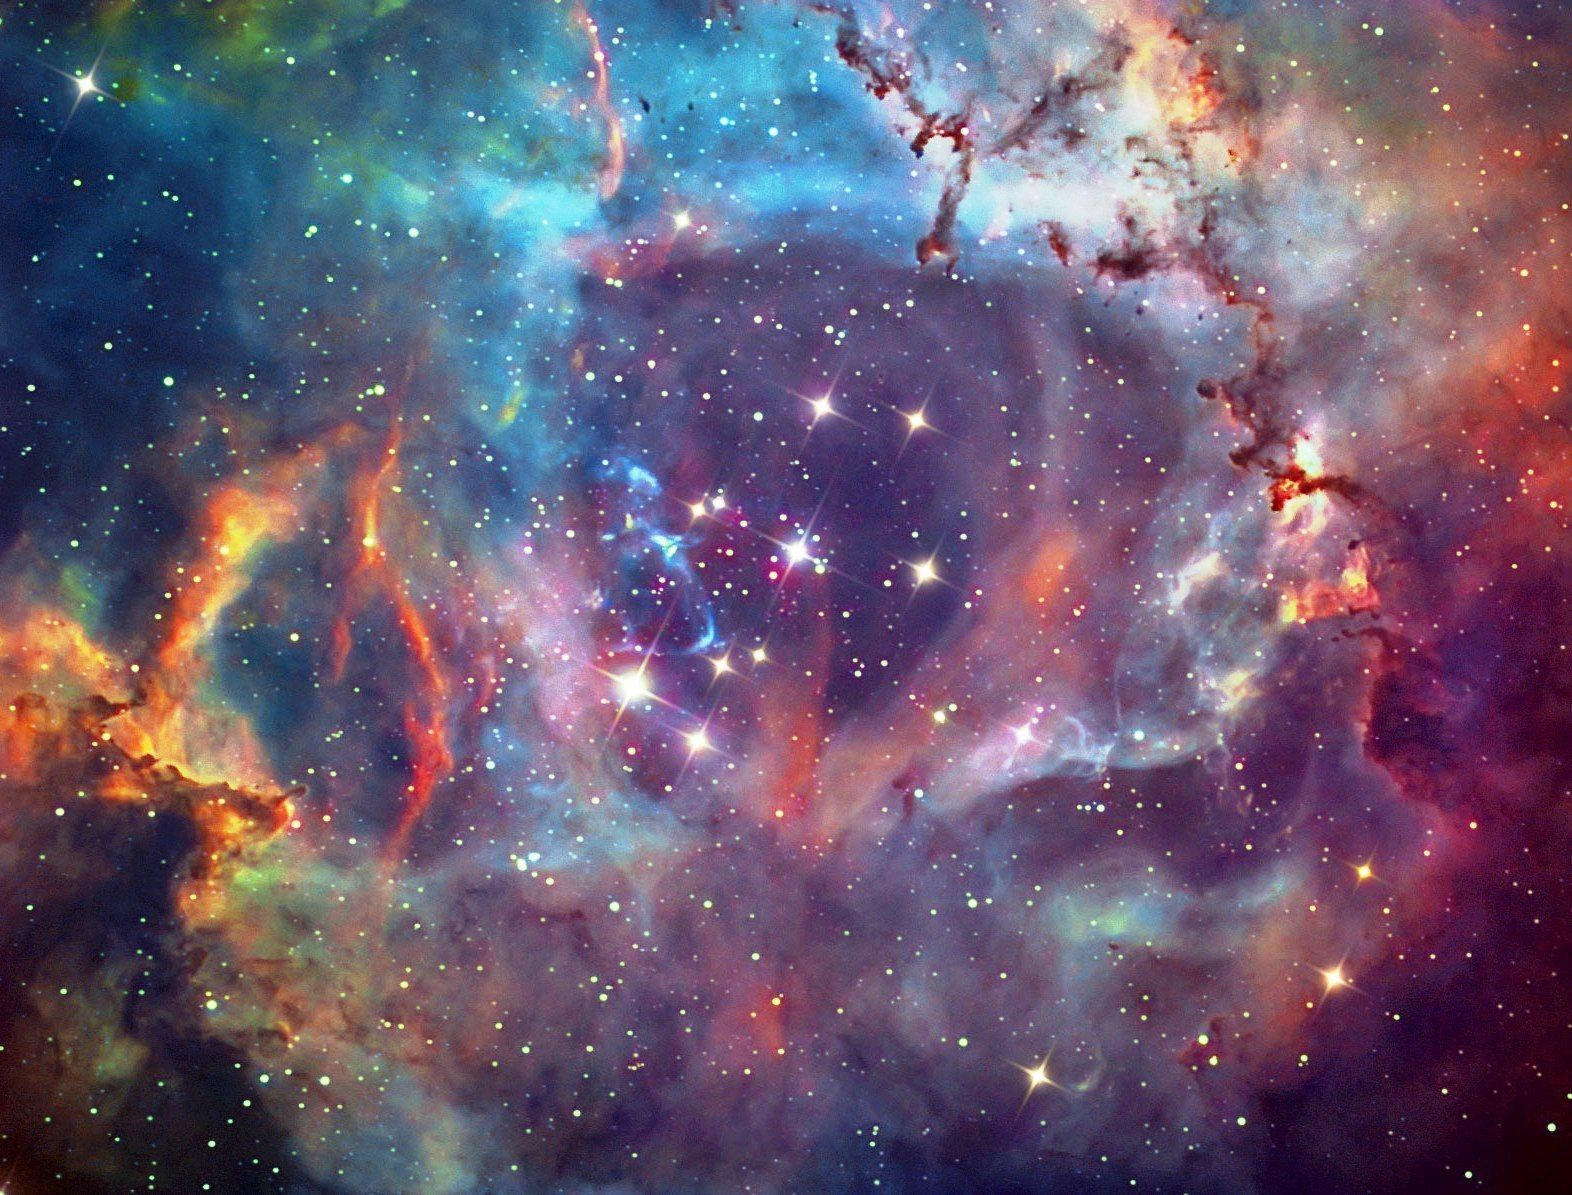 Colorful galaxy wallpapers top free colorful galaxy - Colorful galaxy wallpaper ...